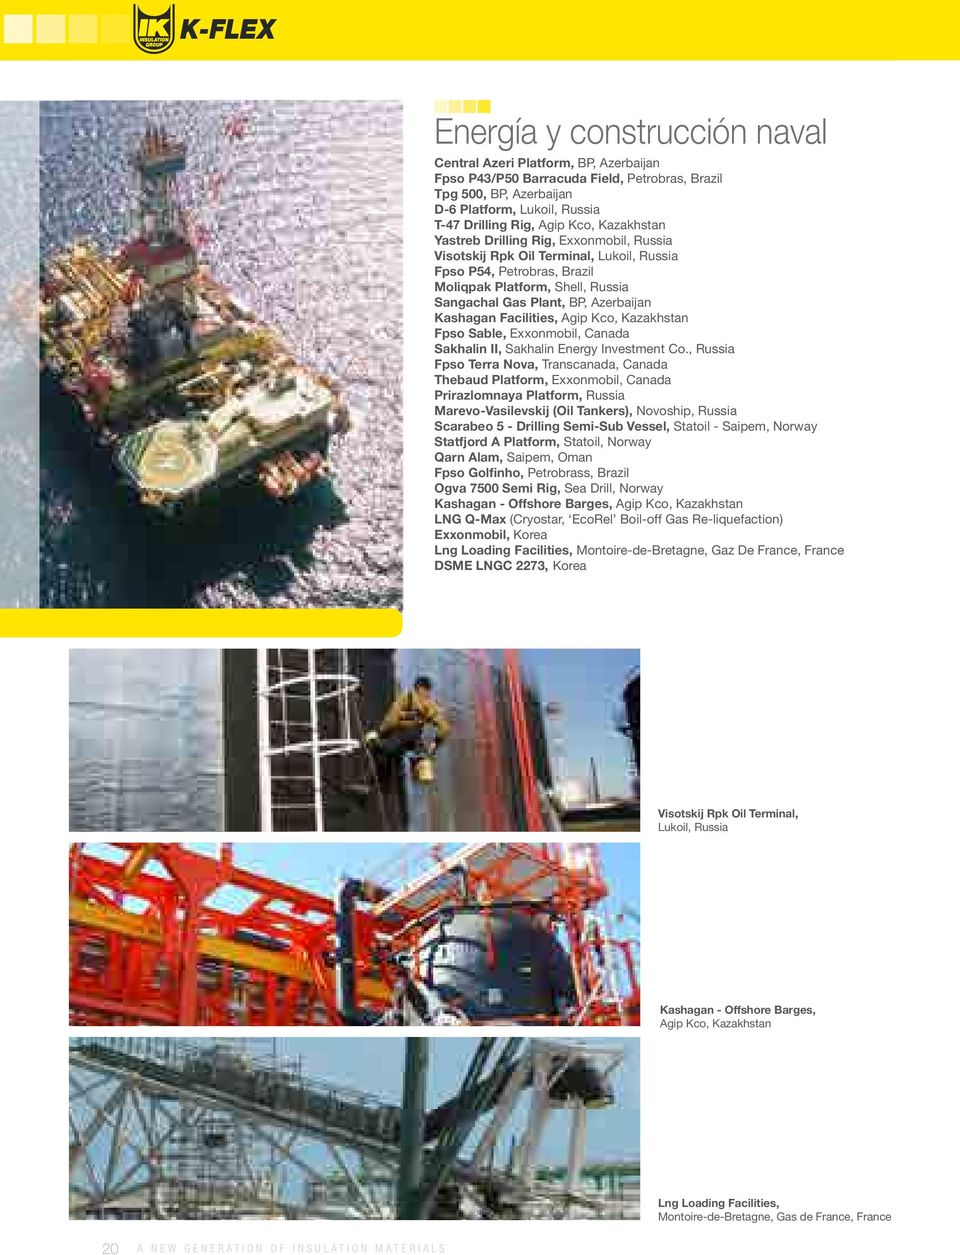 Kashagan Facilities, Agip Kco, Kazakhstan Fpso Sable, Exxonmobil, Canada Sakhalin II, Sakhalin Energy Investment Co.